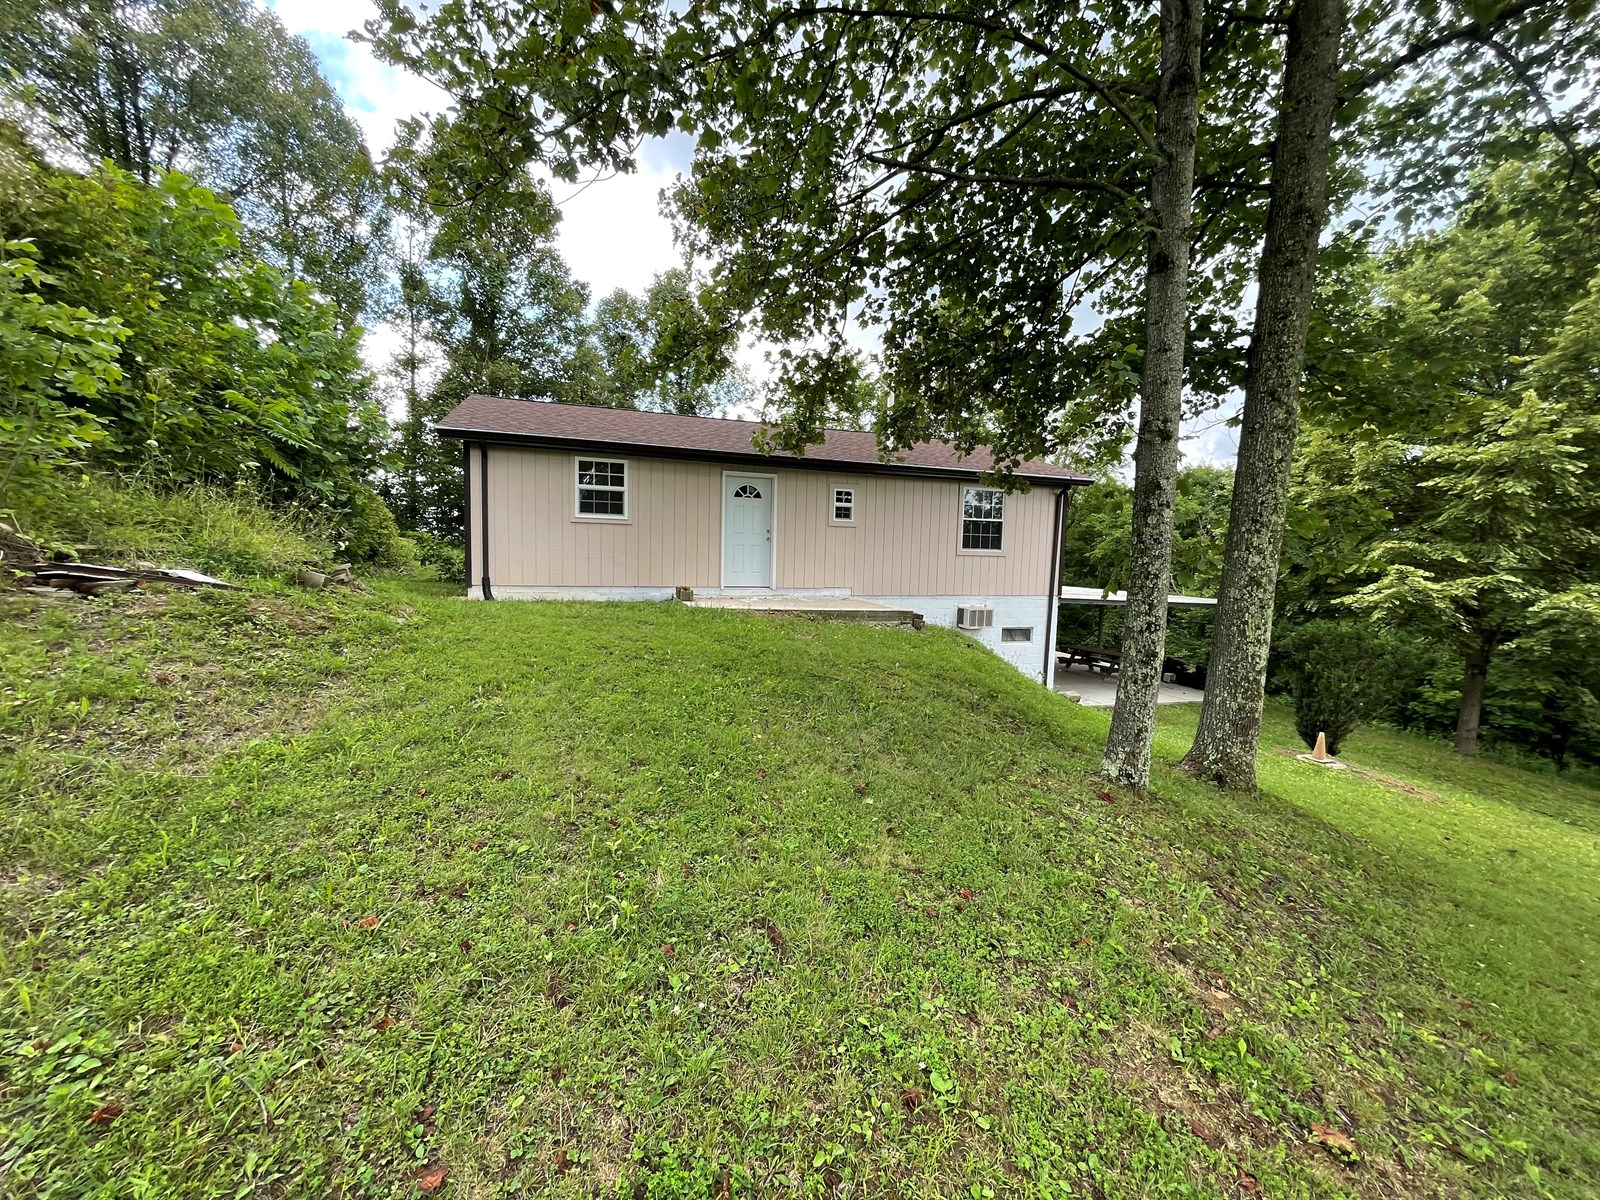 Southeast Ohio Hunting Property for sale